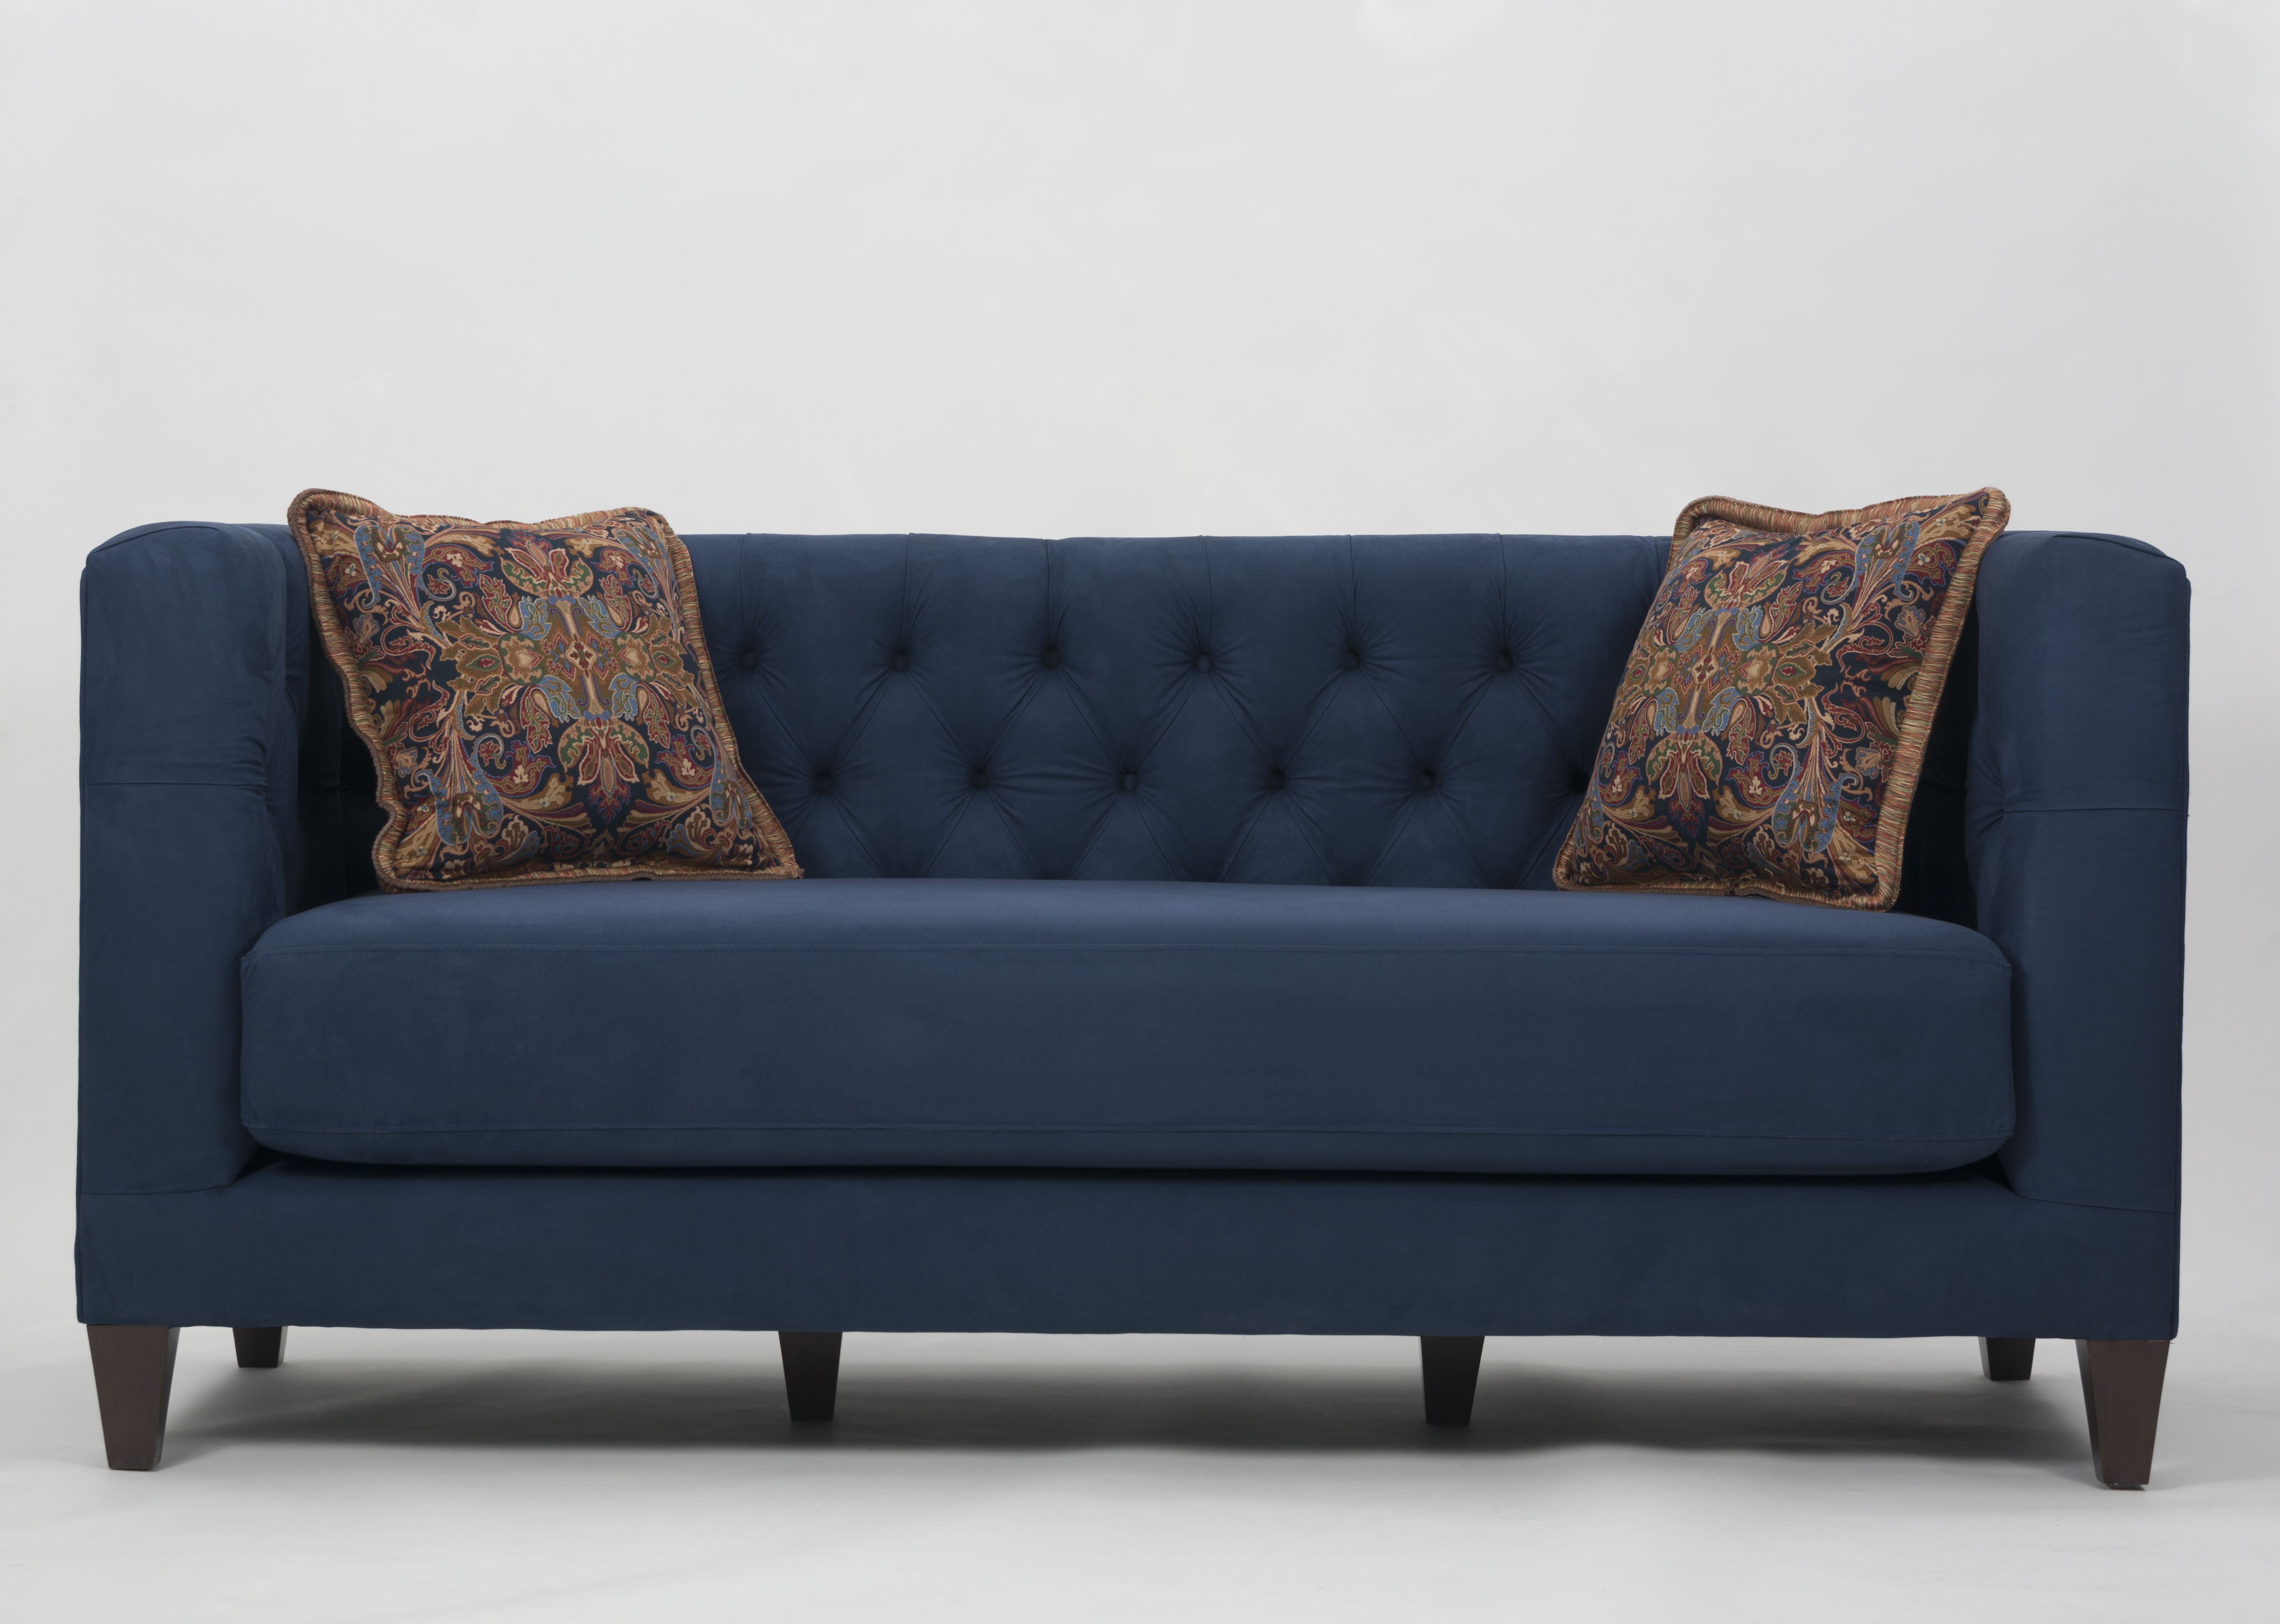 Custom Upholstered On Tufted Sofa With Accent Pillows Wharton Hunt Can Build This For